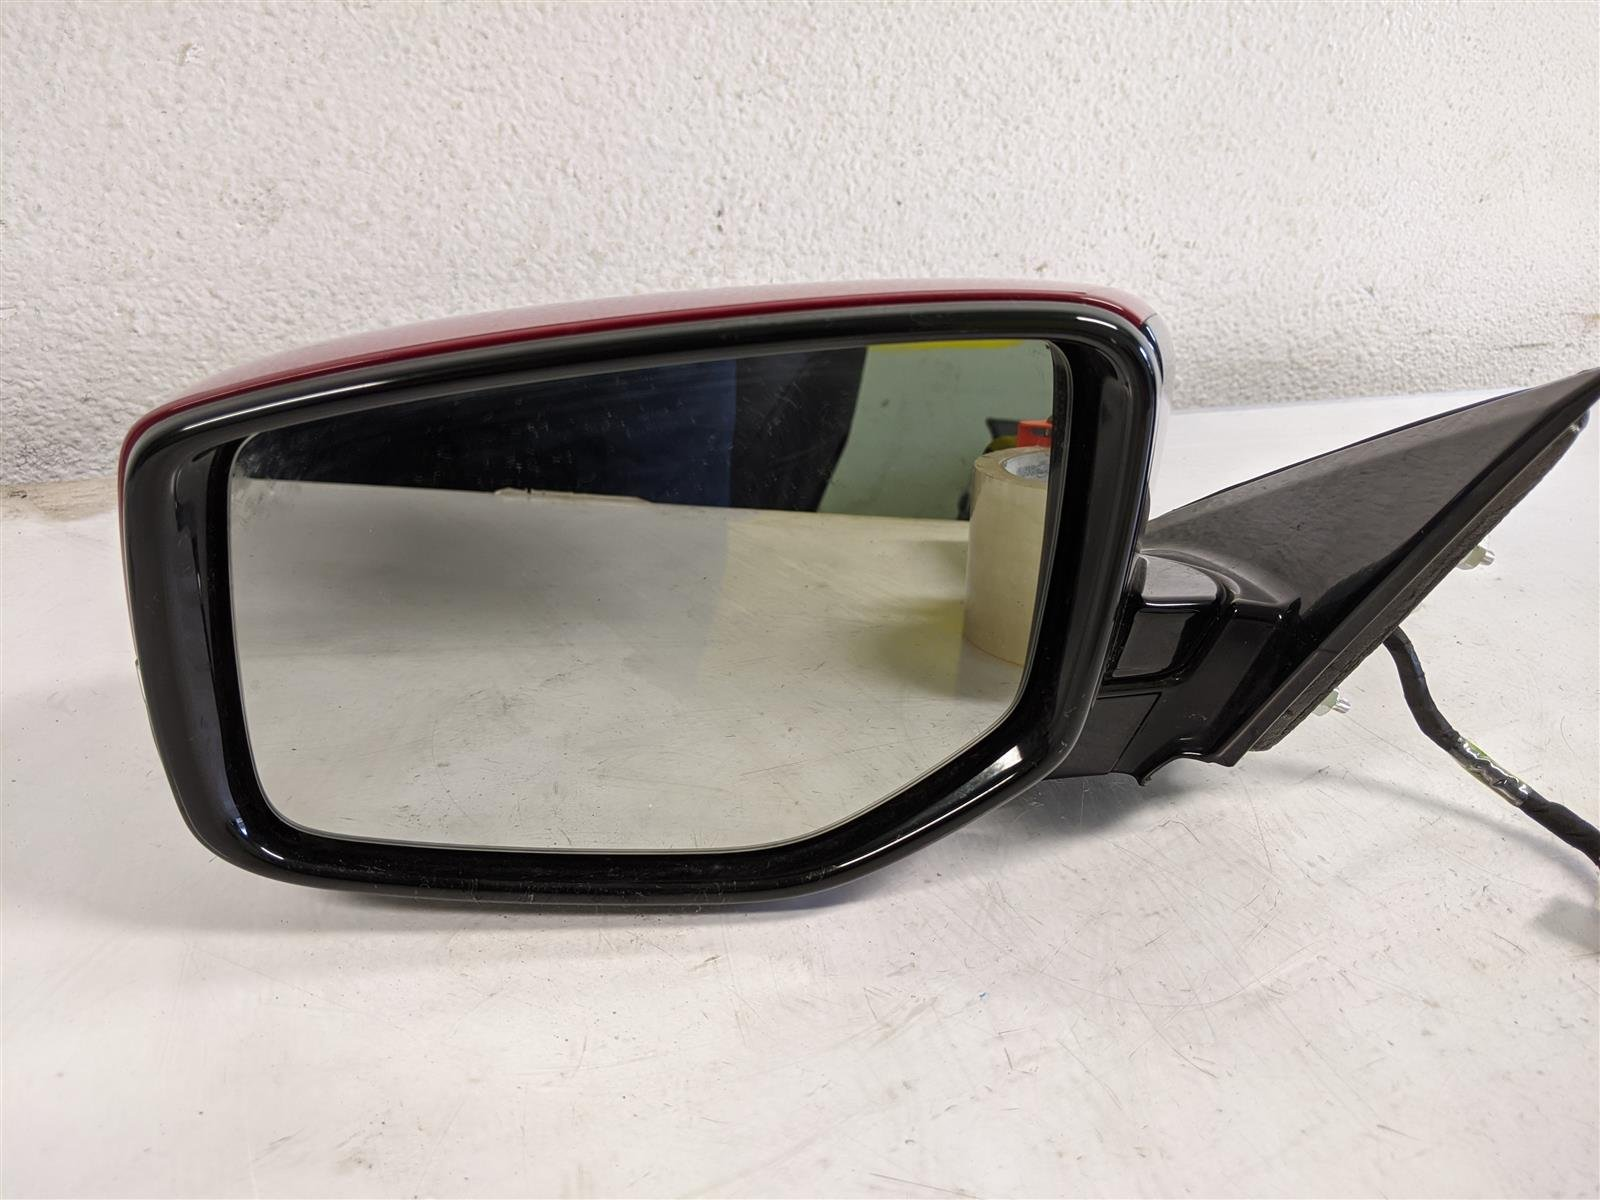 2017 Acura TLX Driver Side View Mirror Red Replacement